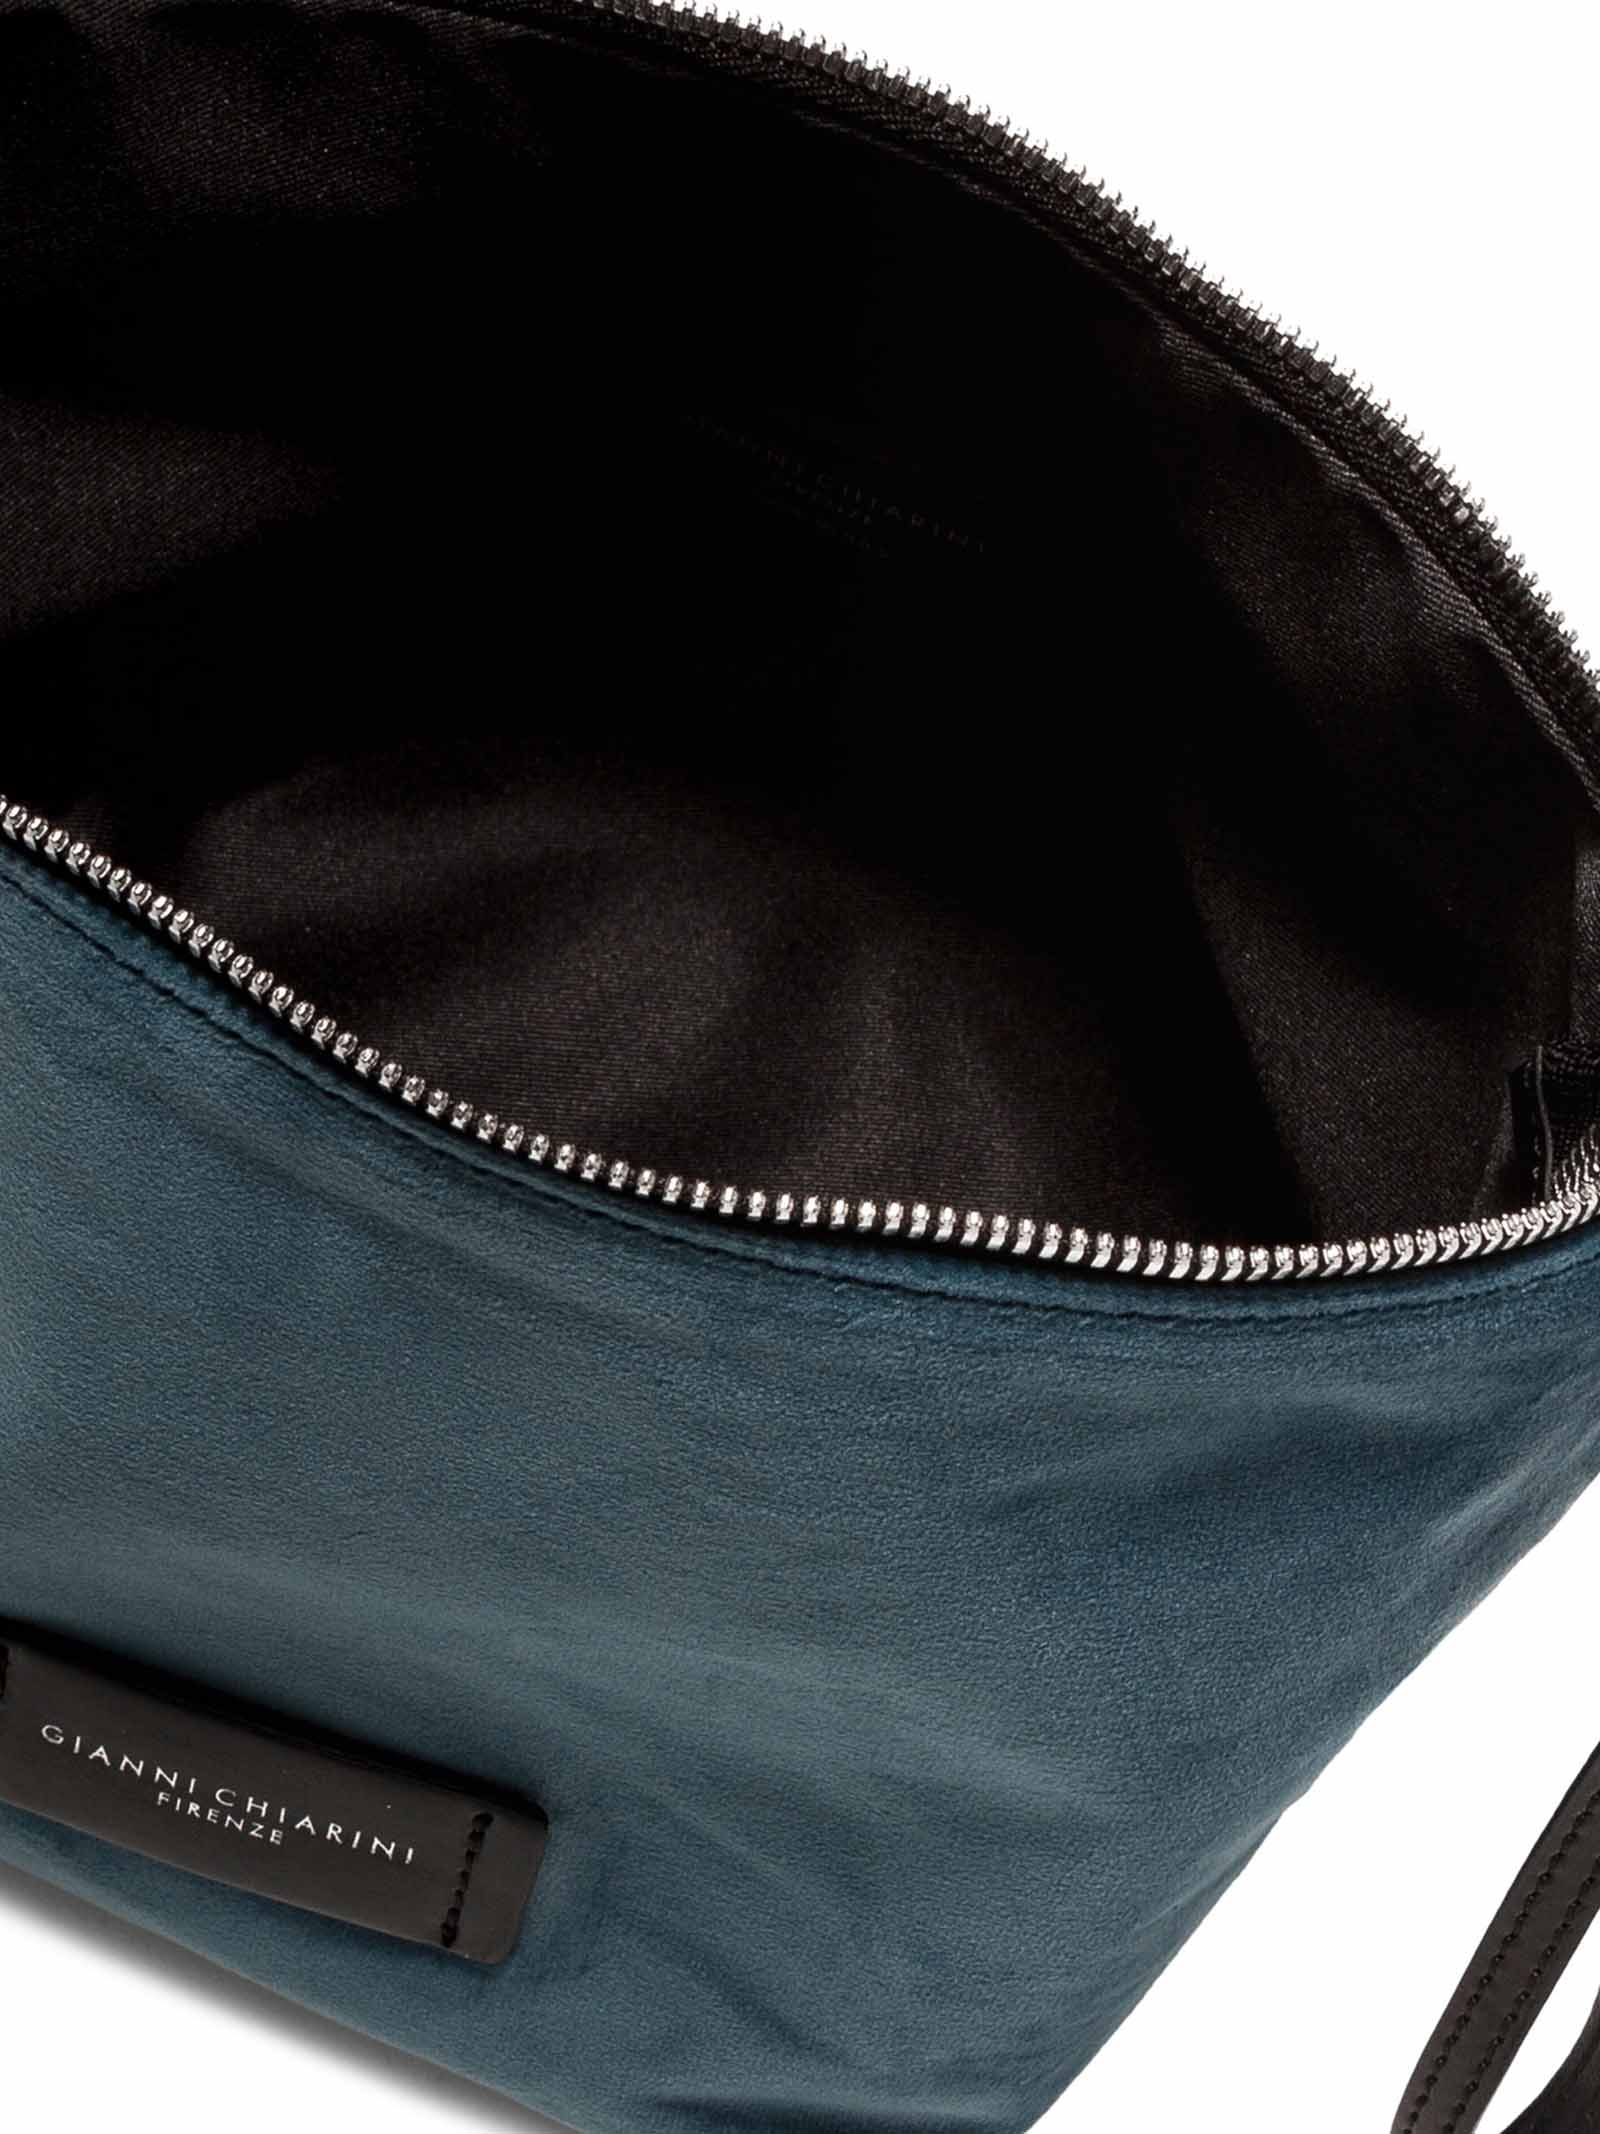 Women's Accessories Small Empty Bag in Blue Velvet with Leather Shoulder Strap and Bracelet Gianni Chiarini | Bags and backpacks | SB939012252